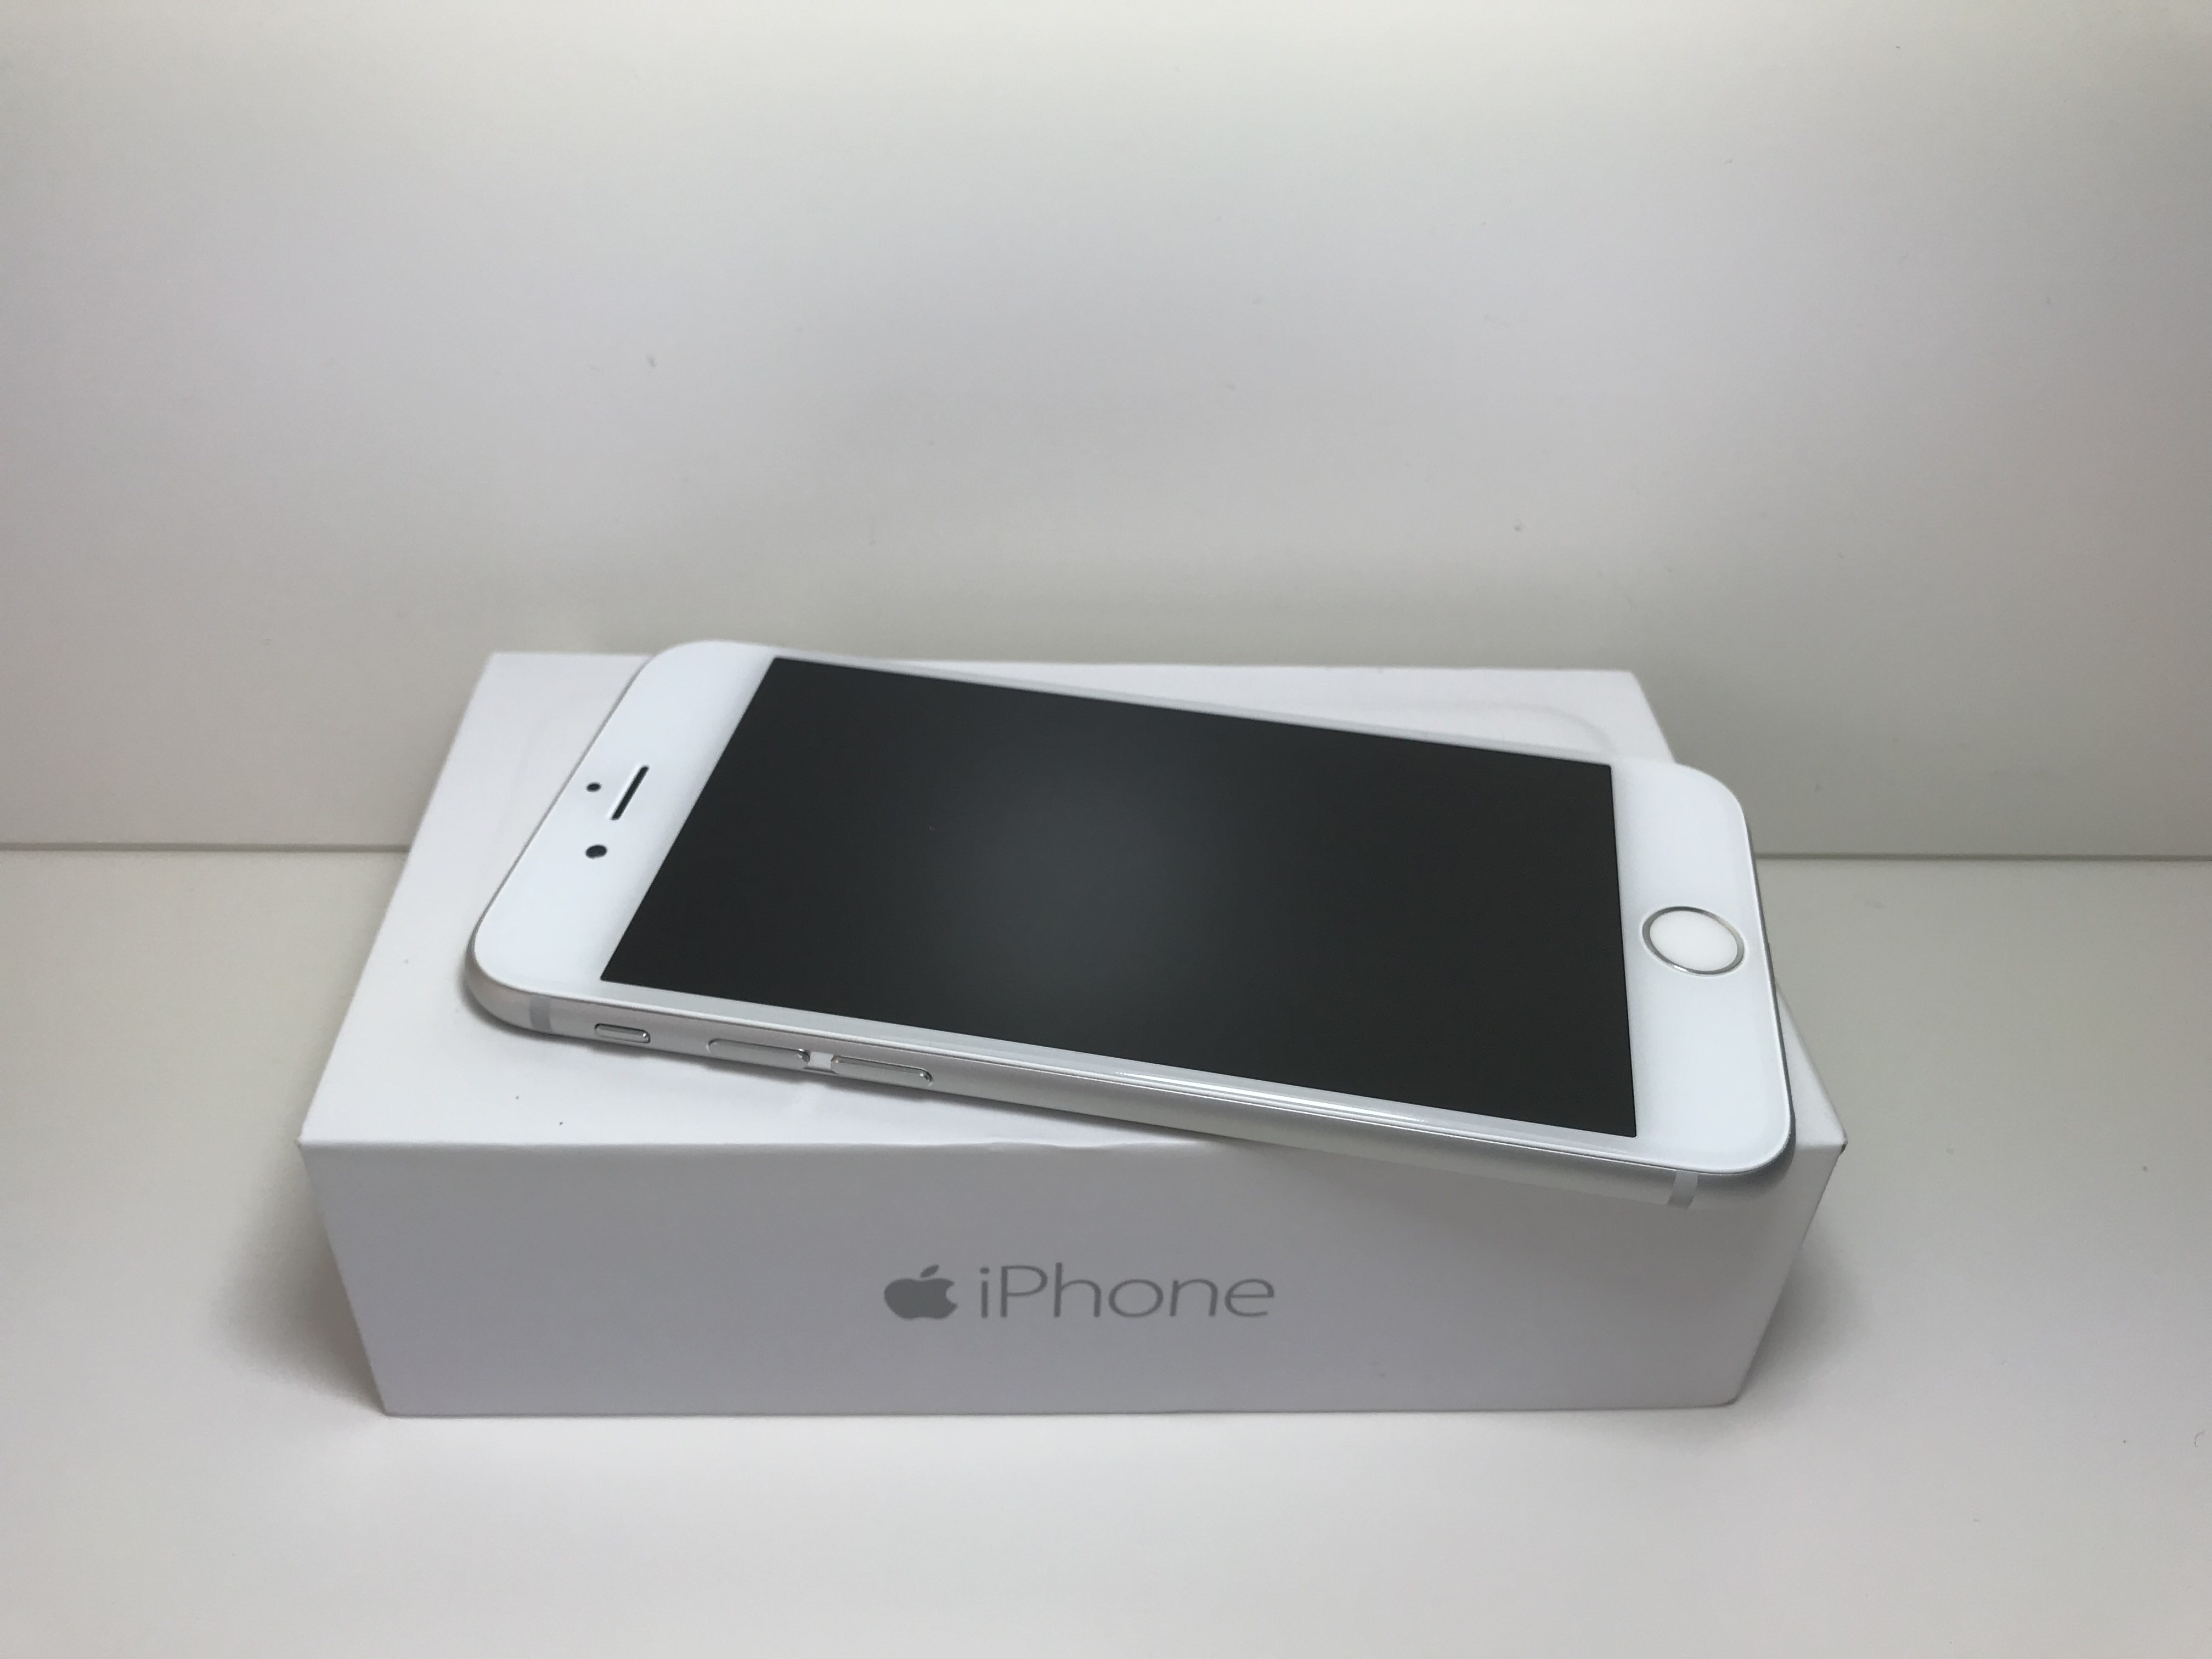 iphone-6-silver-64gb-grade-a-equal-to-new-box-and-accessories.jpg